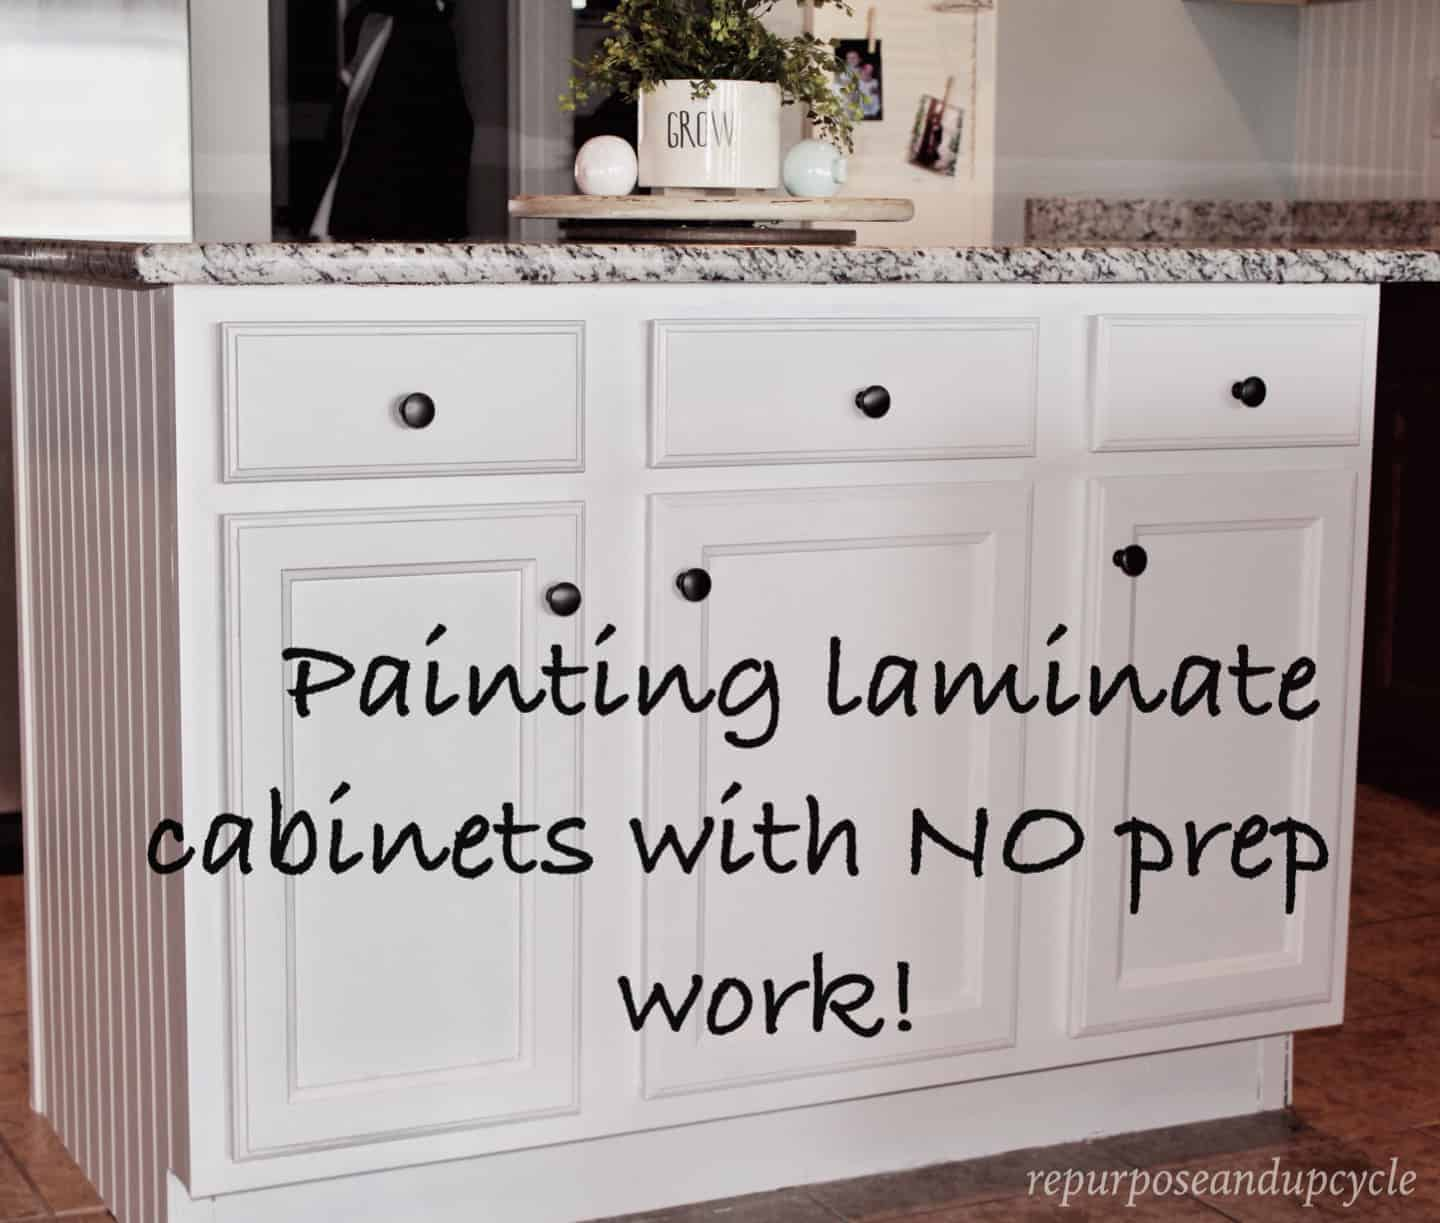 Painting Laminate Cabinets The Right Way Without Sanding